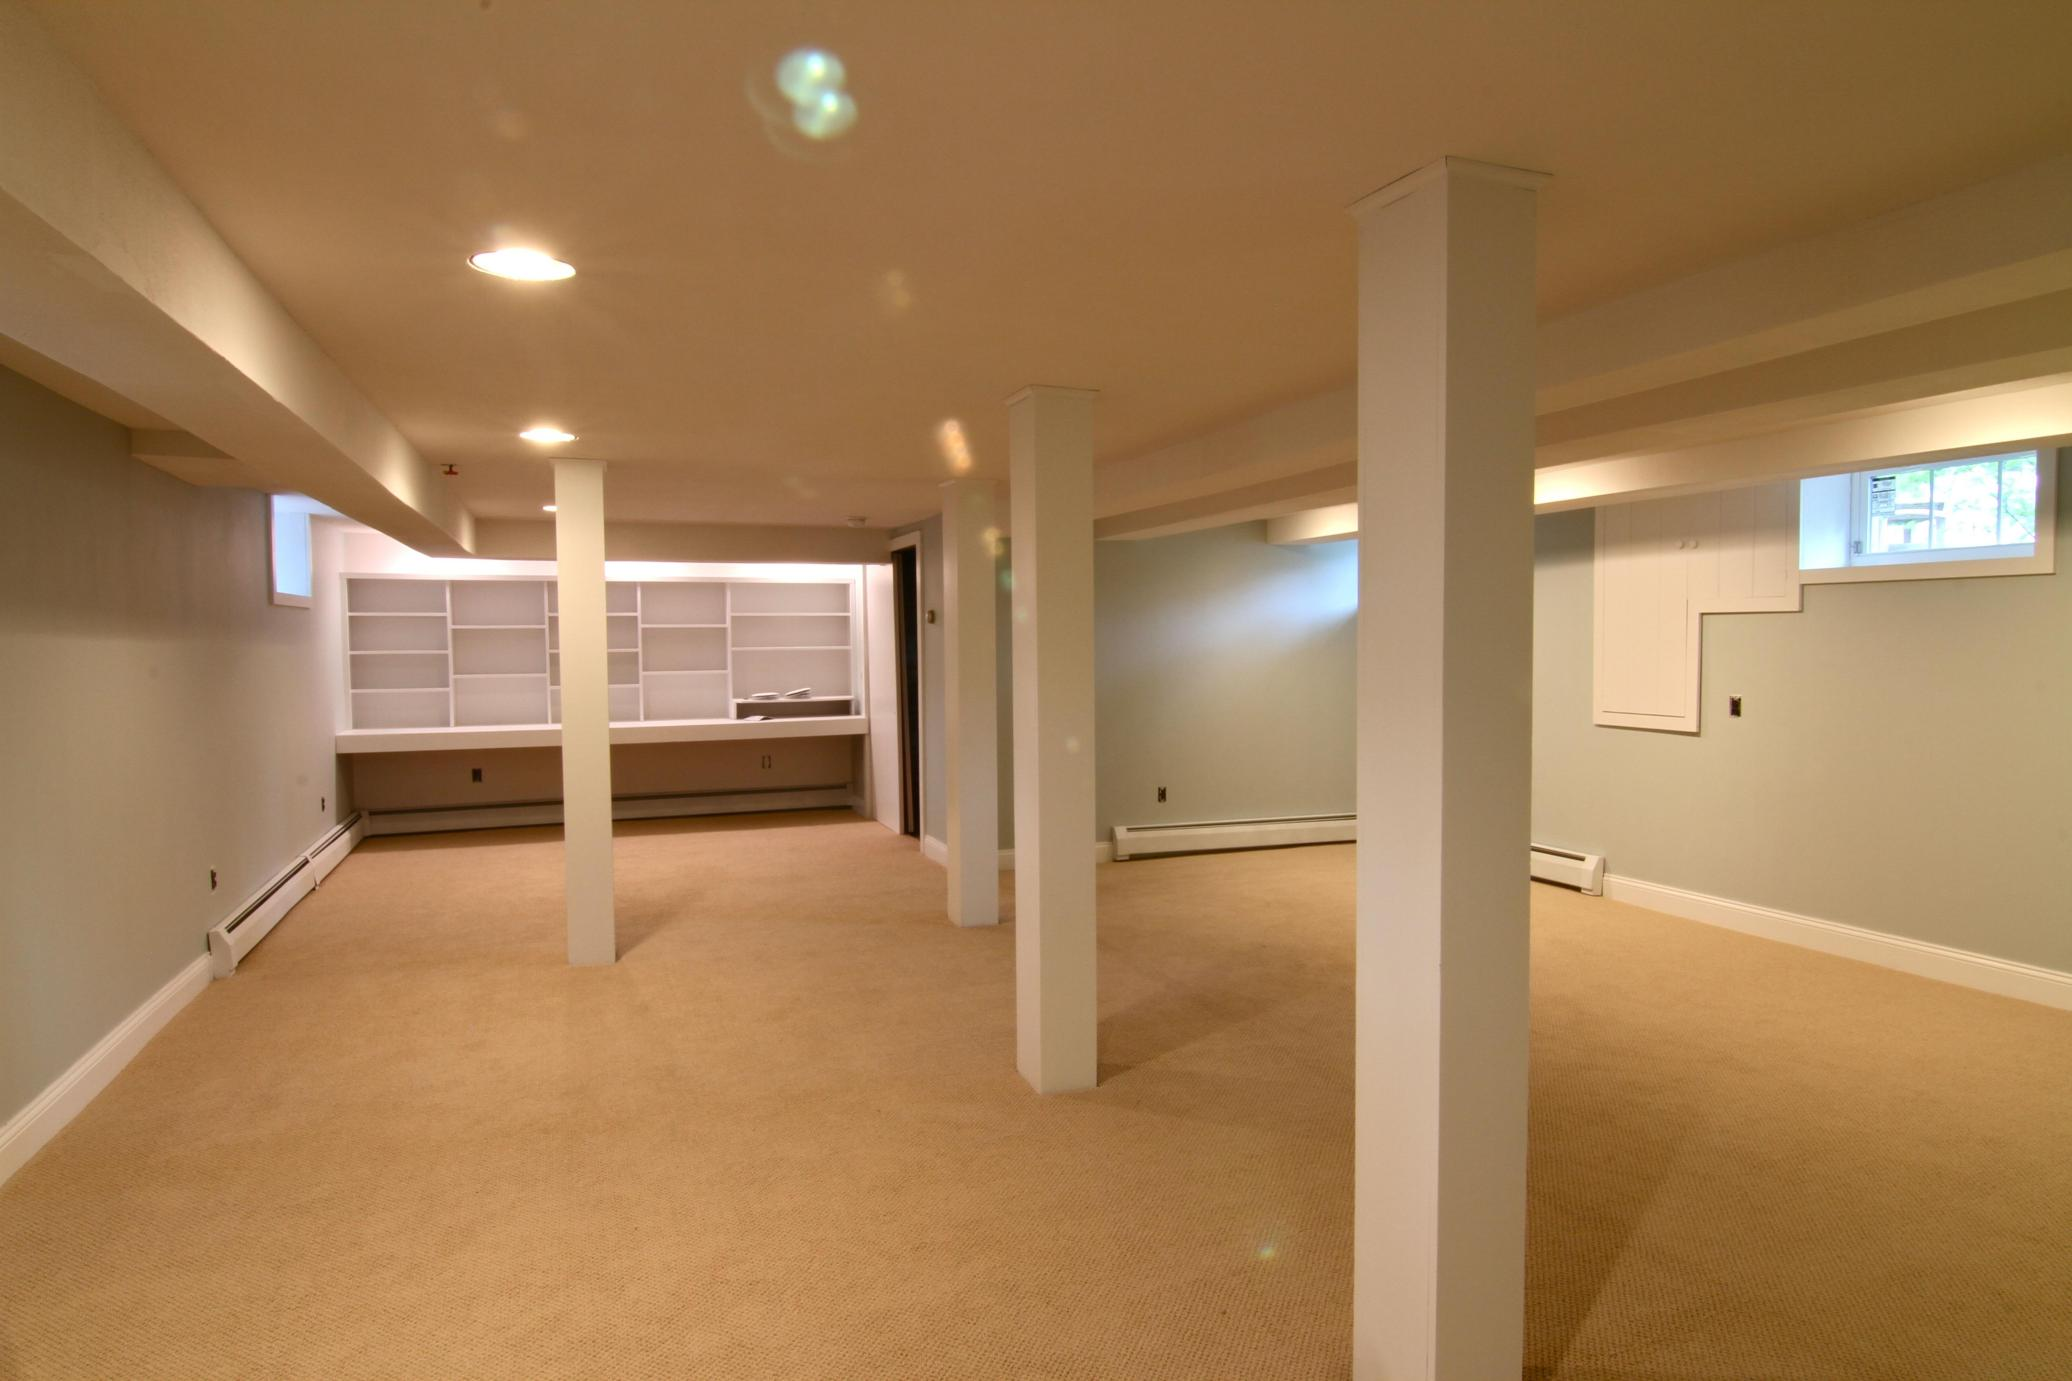 Basement Concrete Floor Paint Color Ideas 19